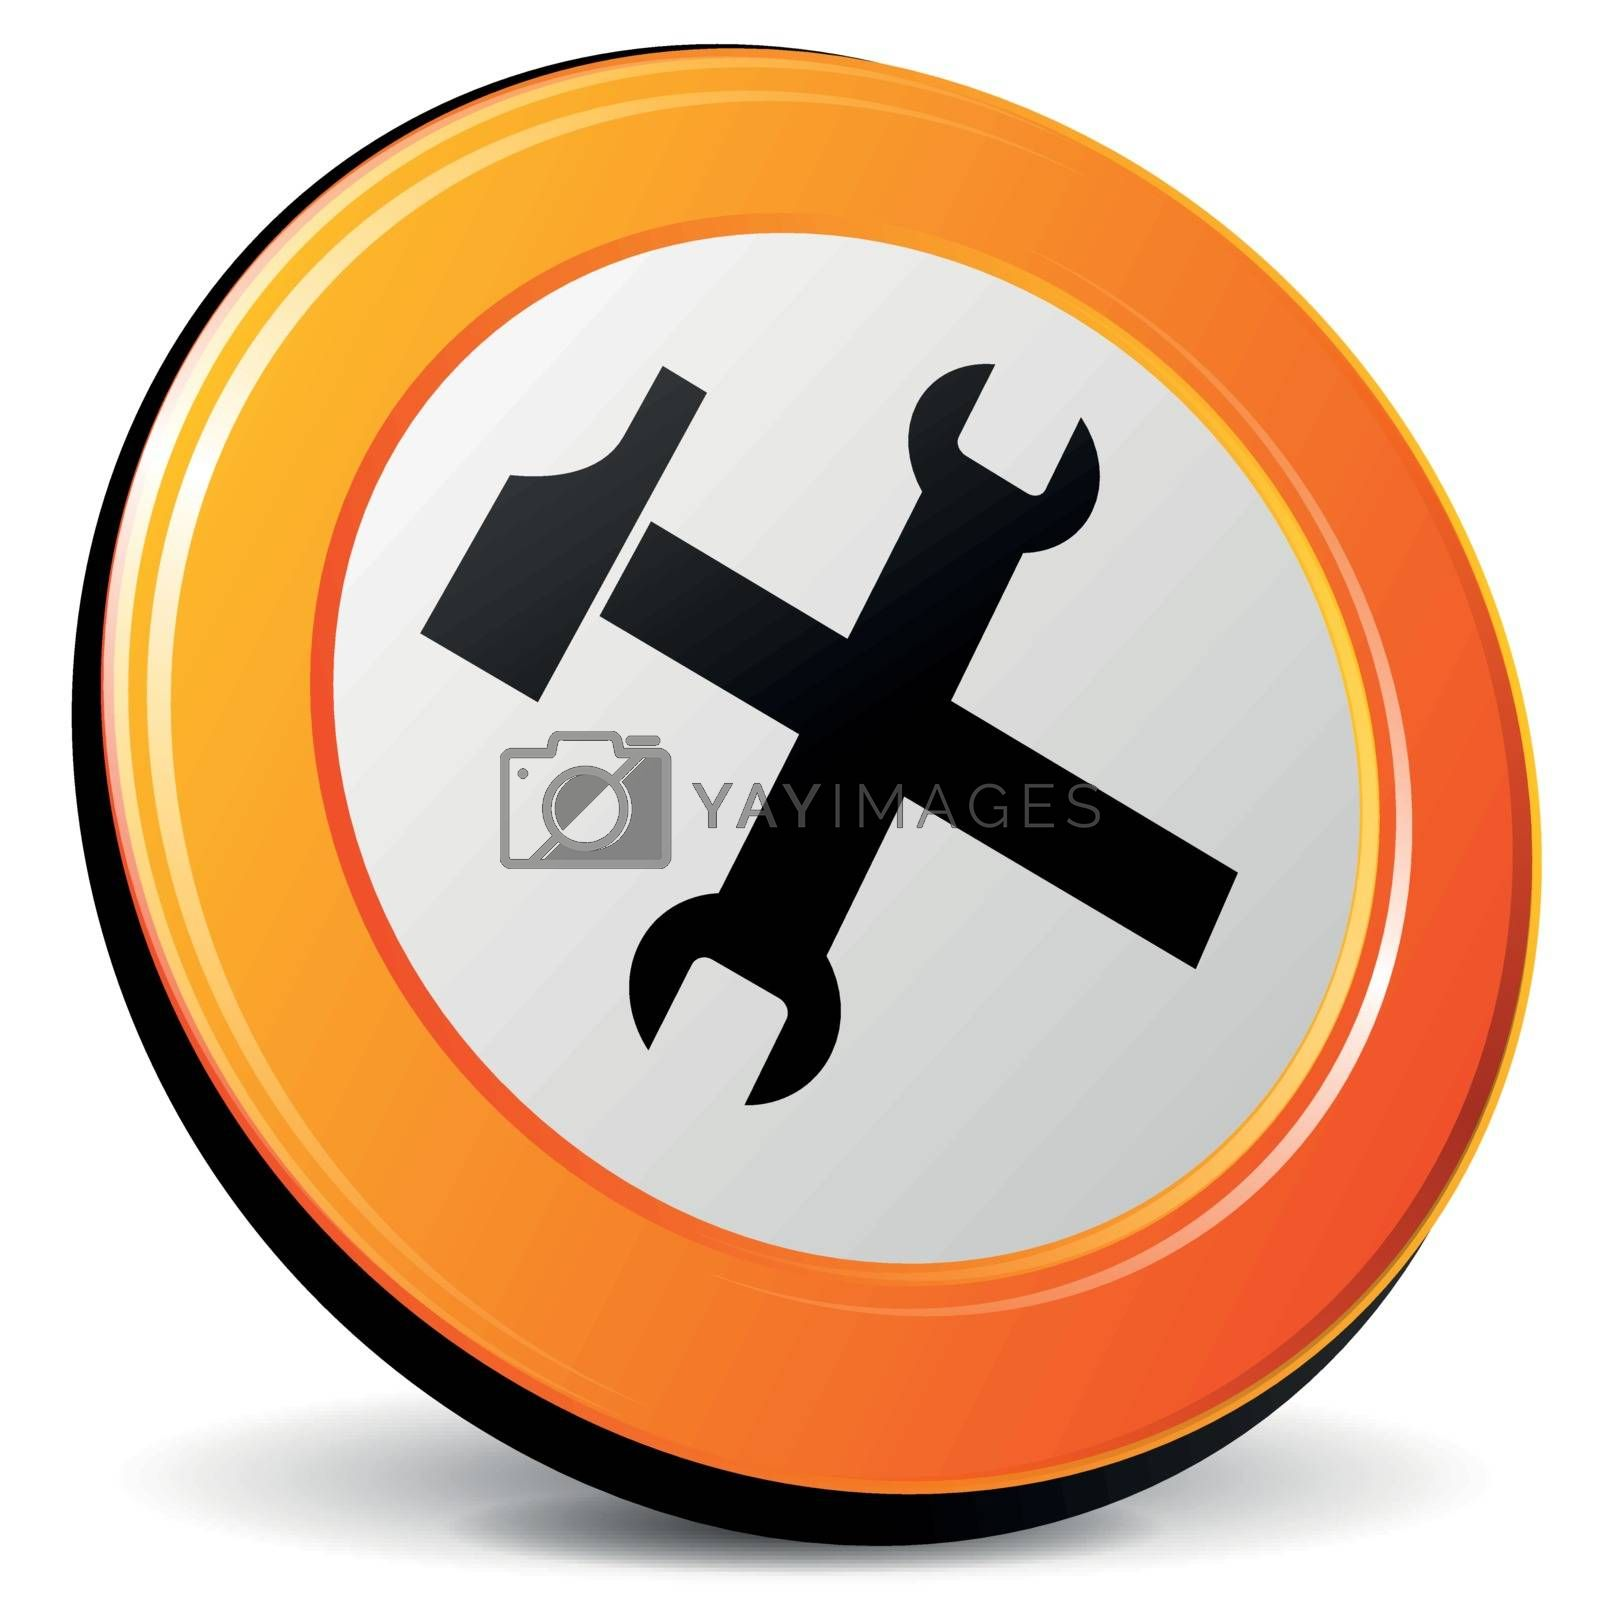 Royalty free image of Vector tools icon by nickylarson974